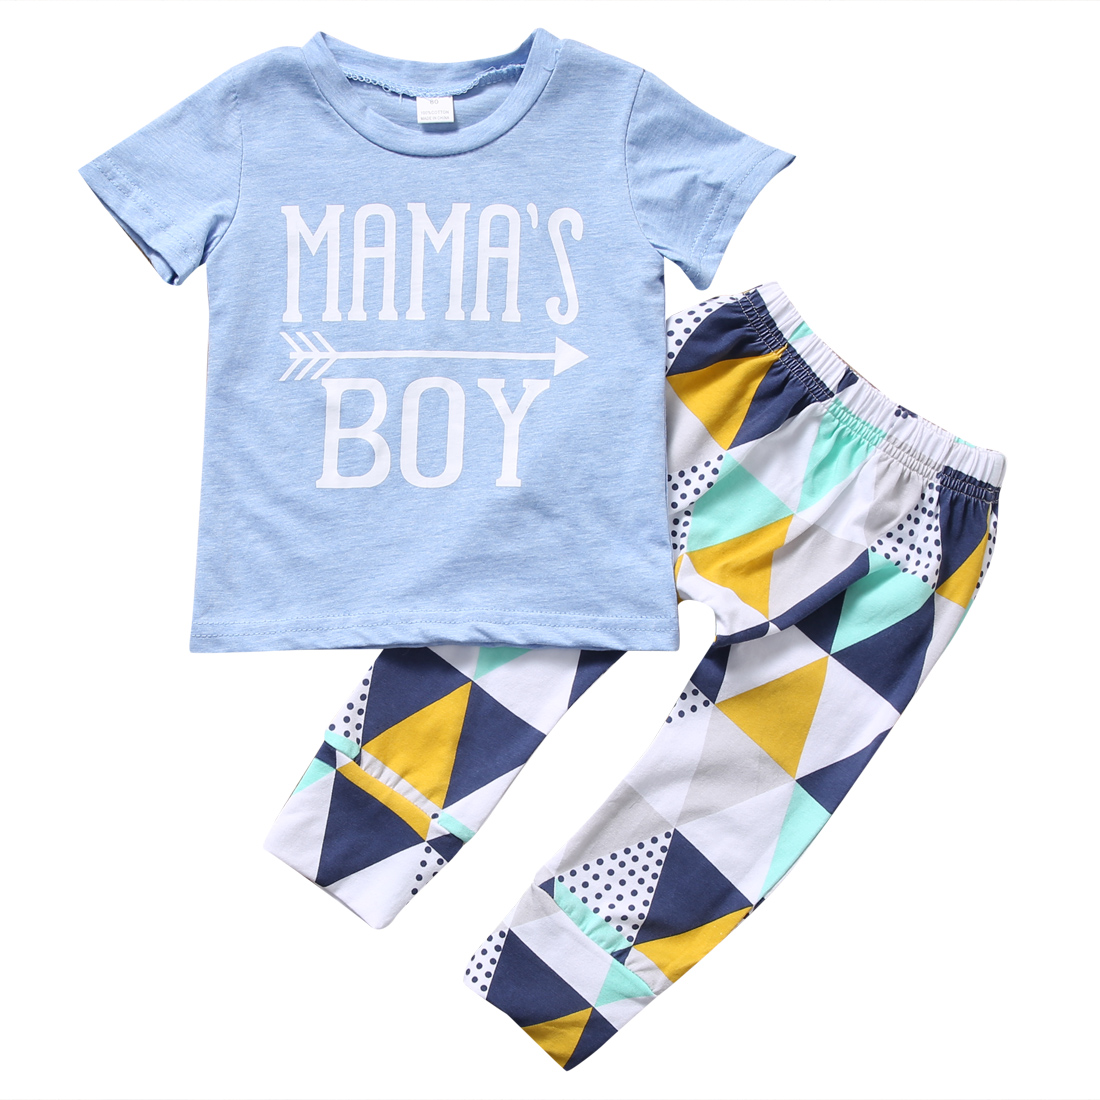 2PCS Newborn Baby Boys Outfits T-shirt Tops+ Pants Sets Clothes Summer Short Sleeve Mama Boy Print Tees Casual Clothes t shirt tops cotton denim pants 2pcs clothes sets newborn toddler kid infant baby boy clothes outfit set au 2016 new boys